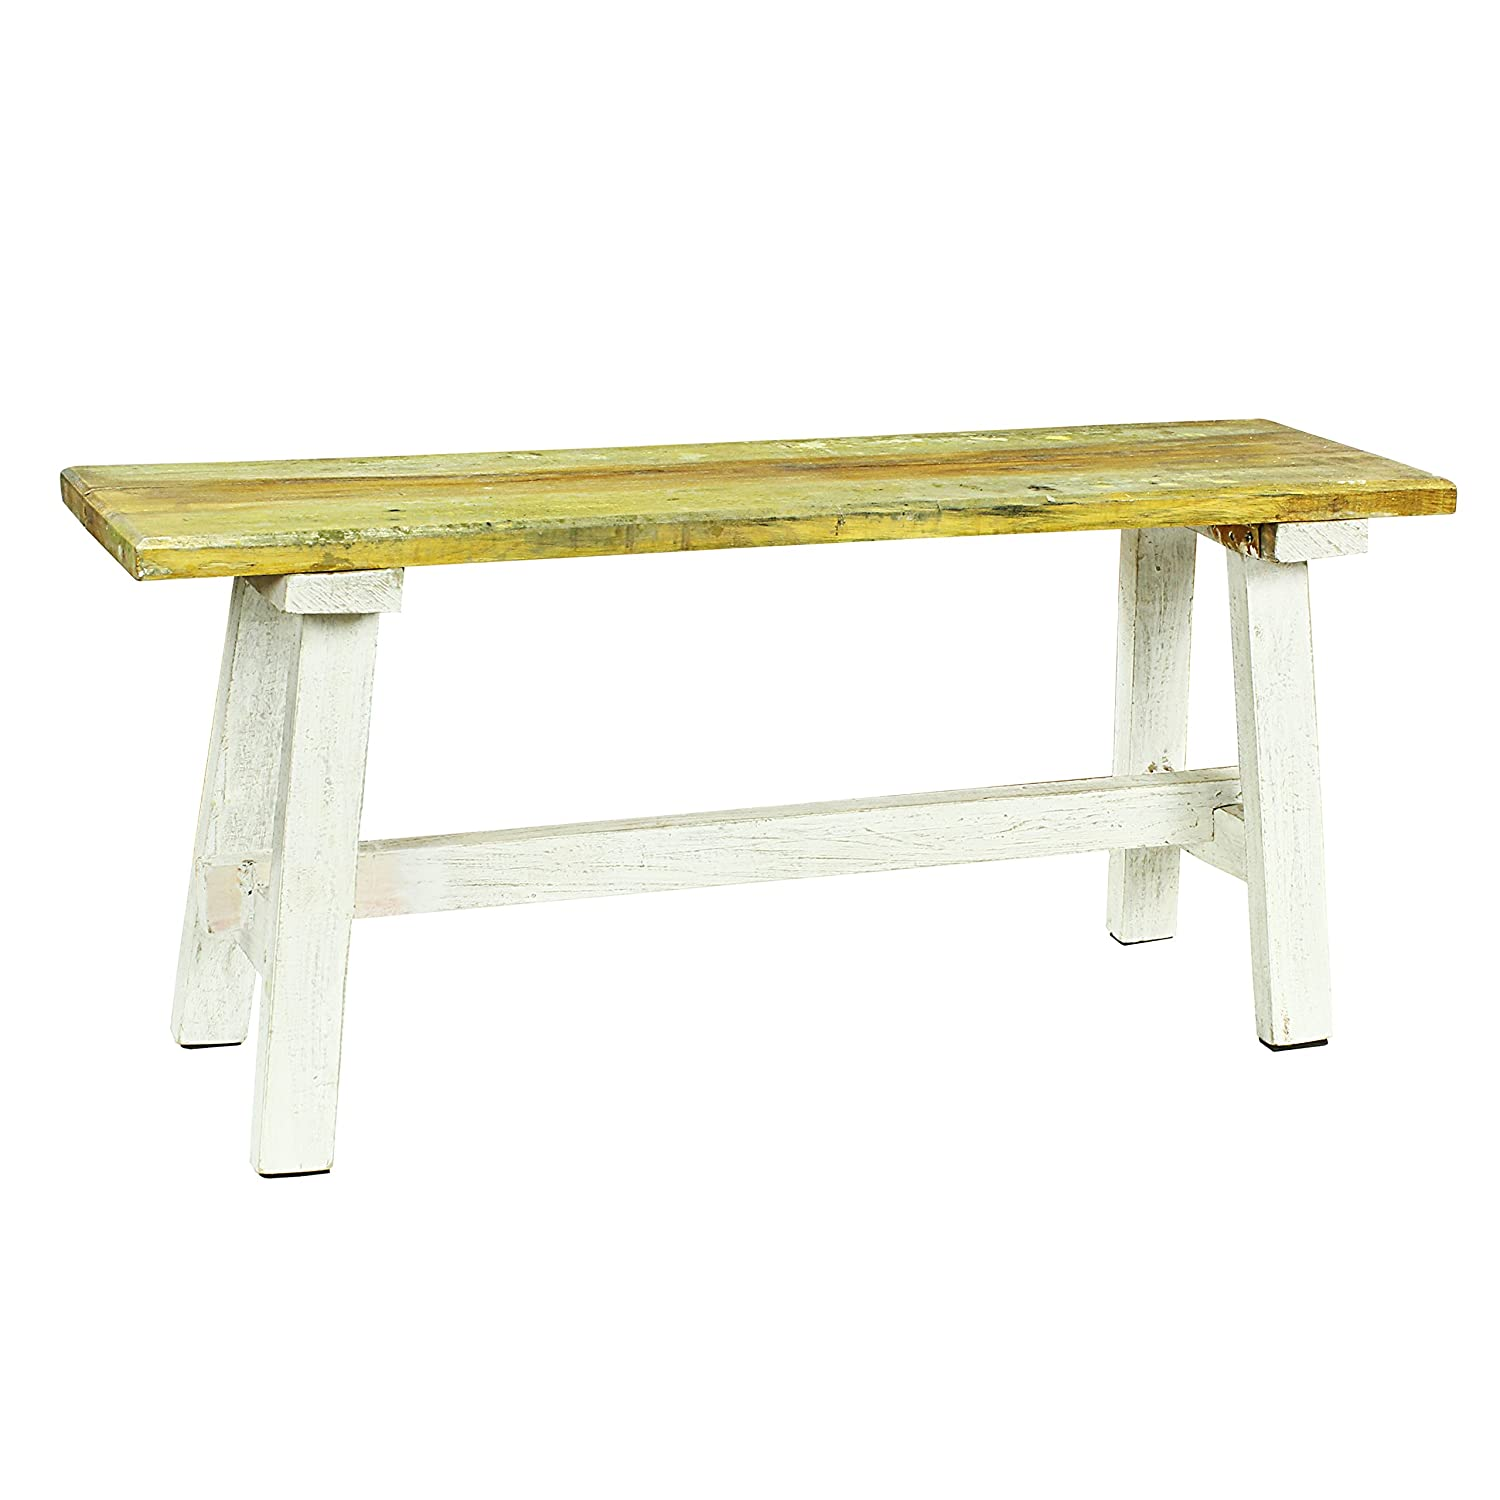 Antique Revival Franco Country Style Bench, White